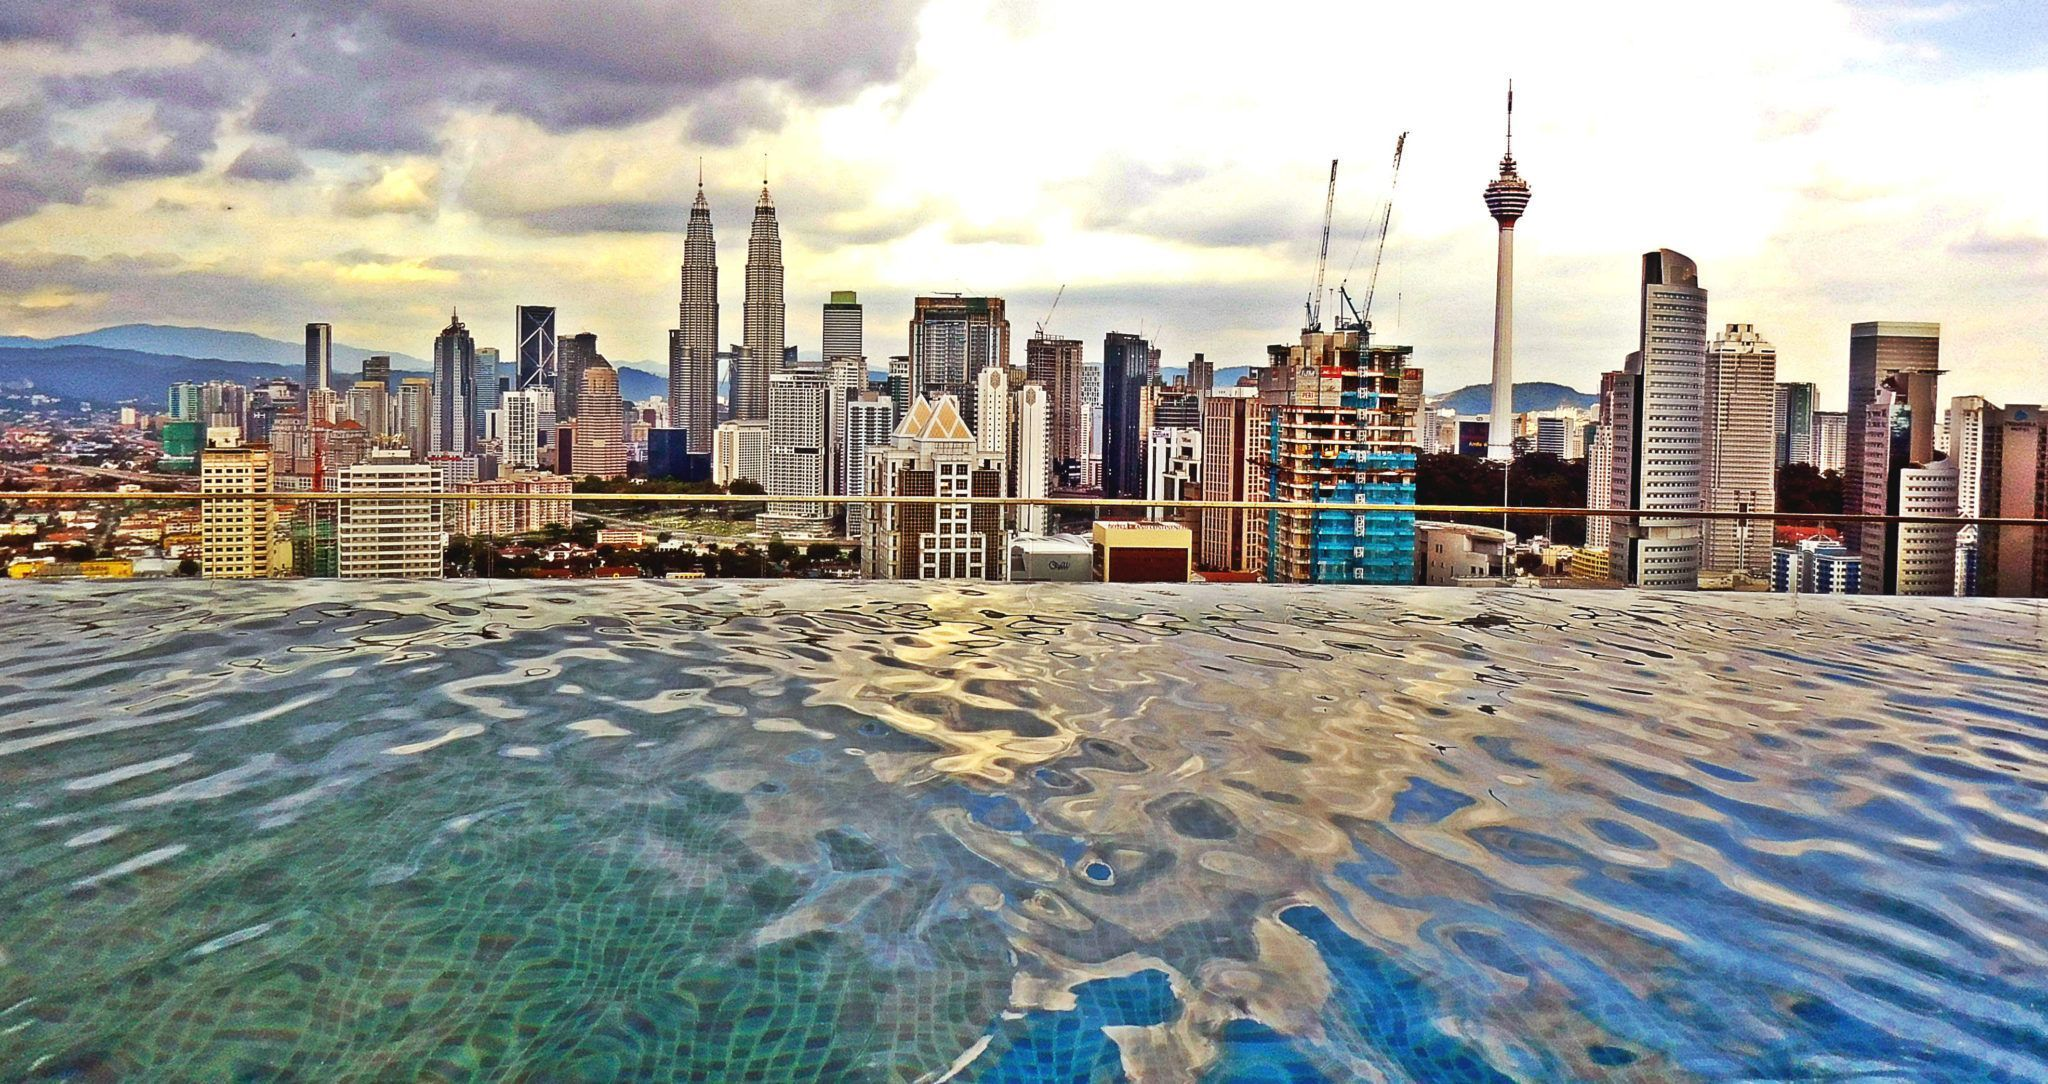 Rooftop Zwembad Kuala Lumpur 48 Hours In Kuala Lumpur Top Best Things To Do Ani